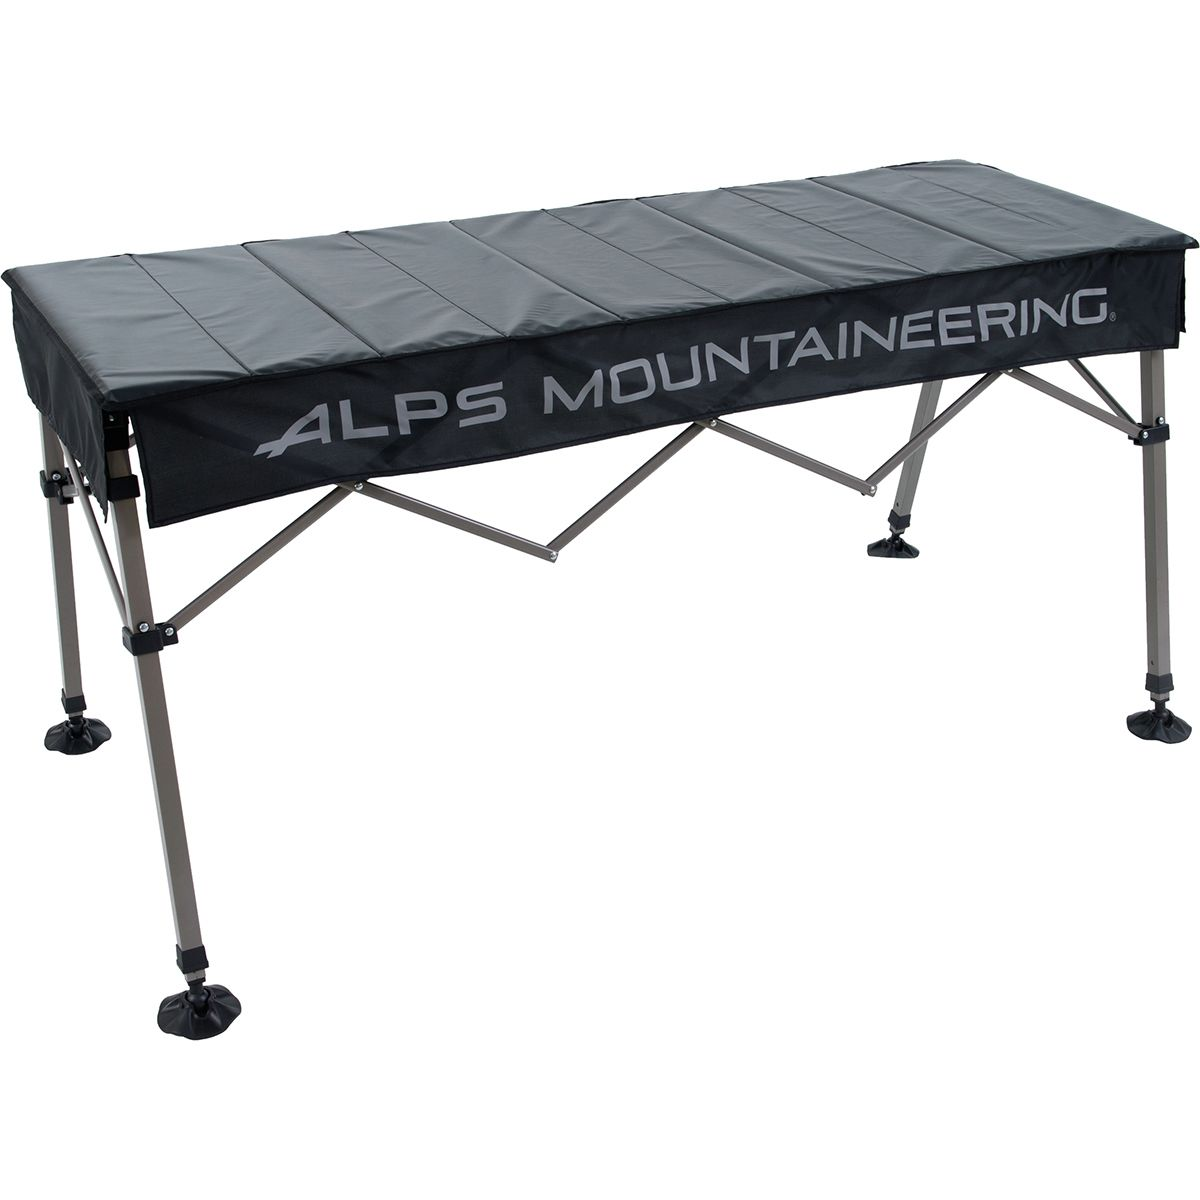 ALPS Mountaineering Fremont Table Black, One Size